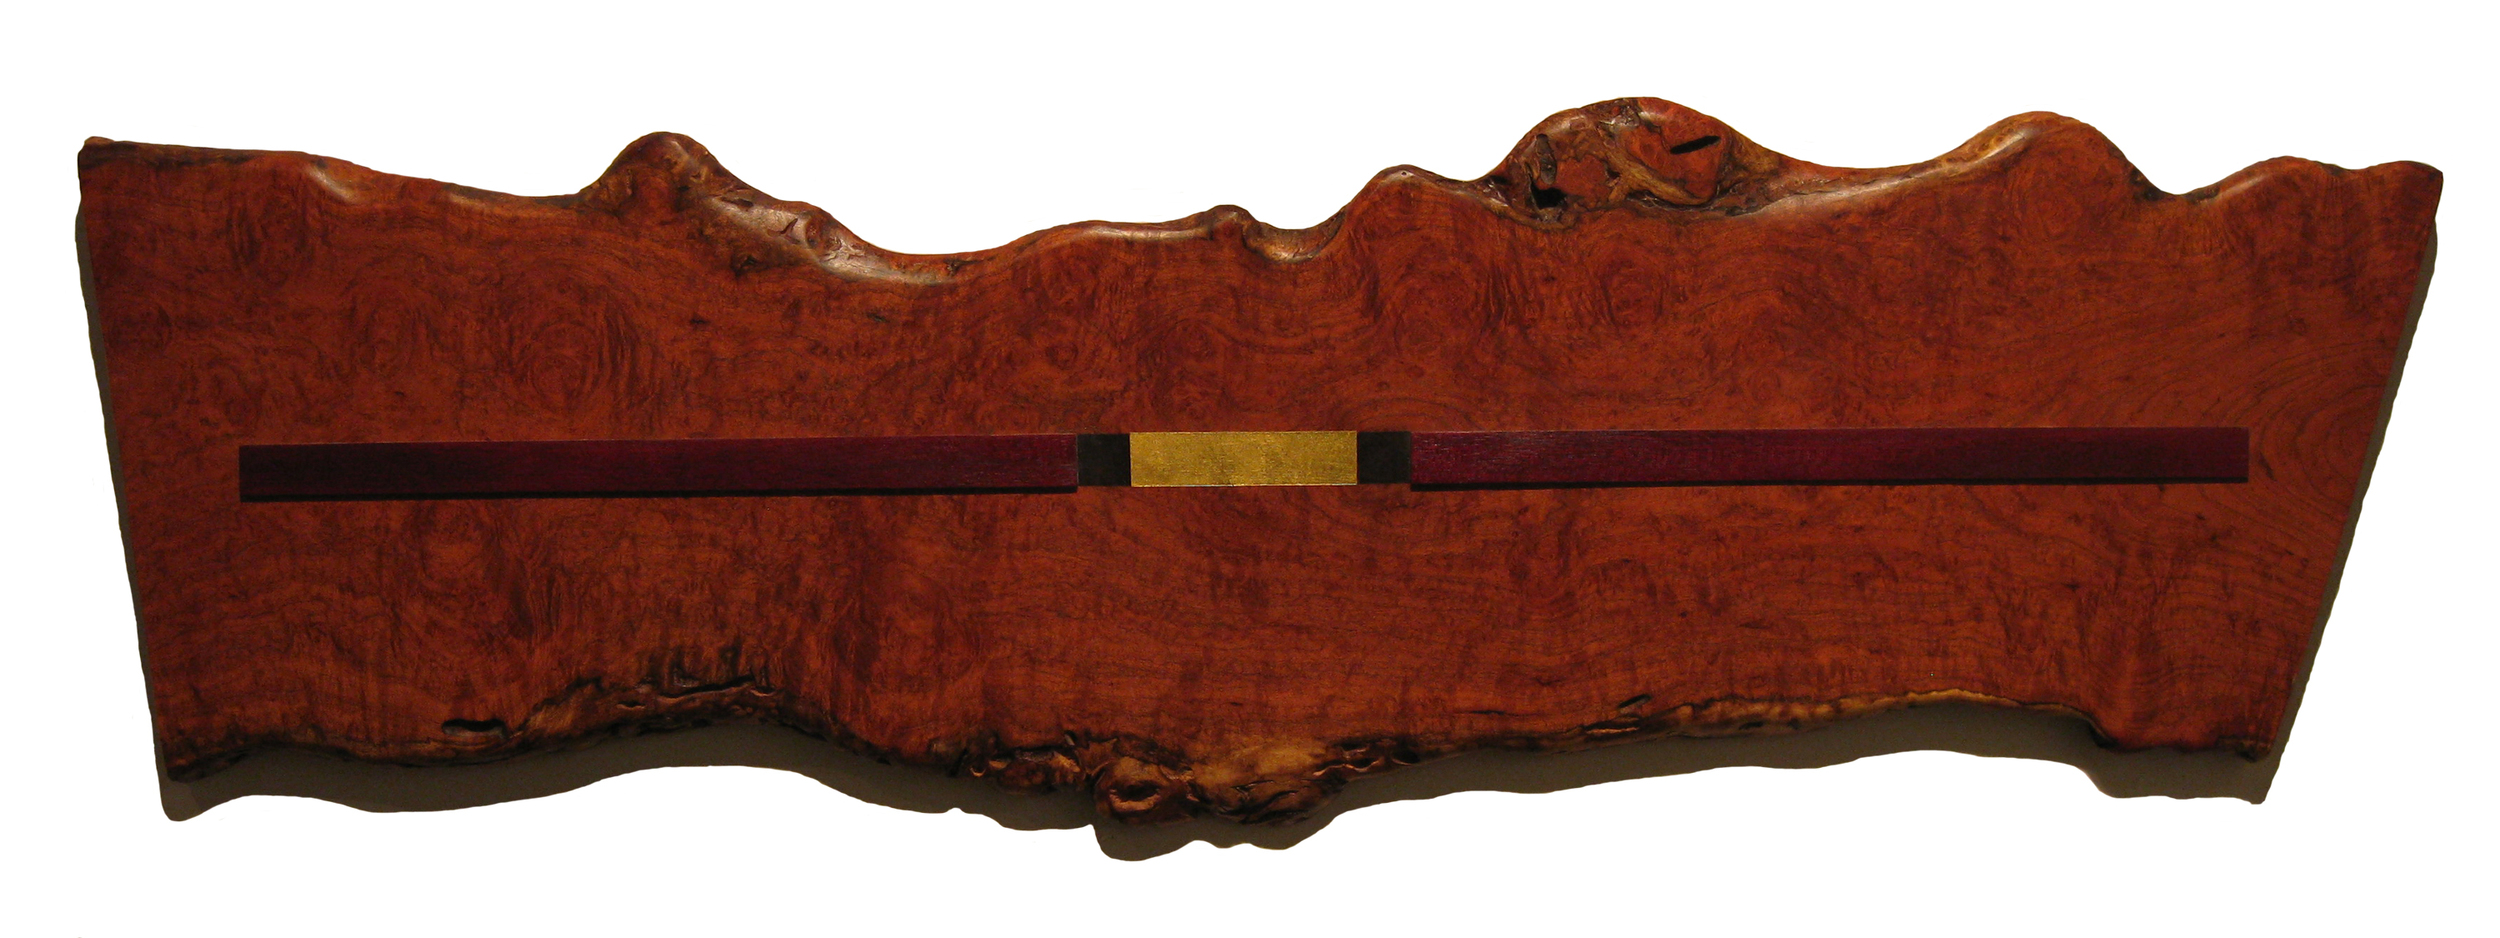 "Mesquite Gold  Jeffrey Brosk JB113 Mesquite & Purpleheart Wood, Black Stain, Gold Leaf 16"" x 51"" x 1"""